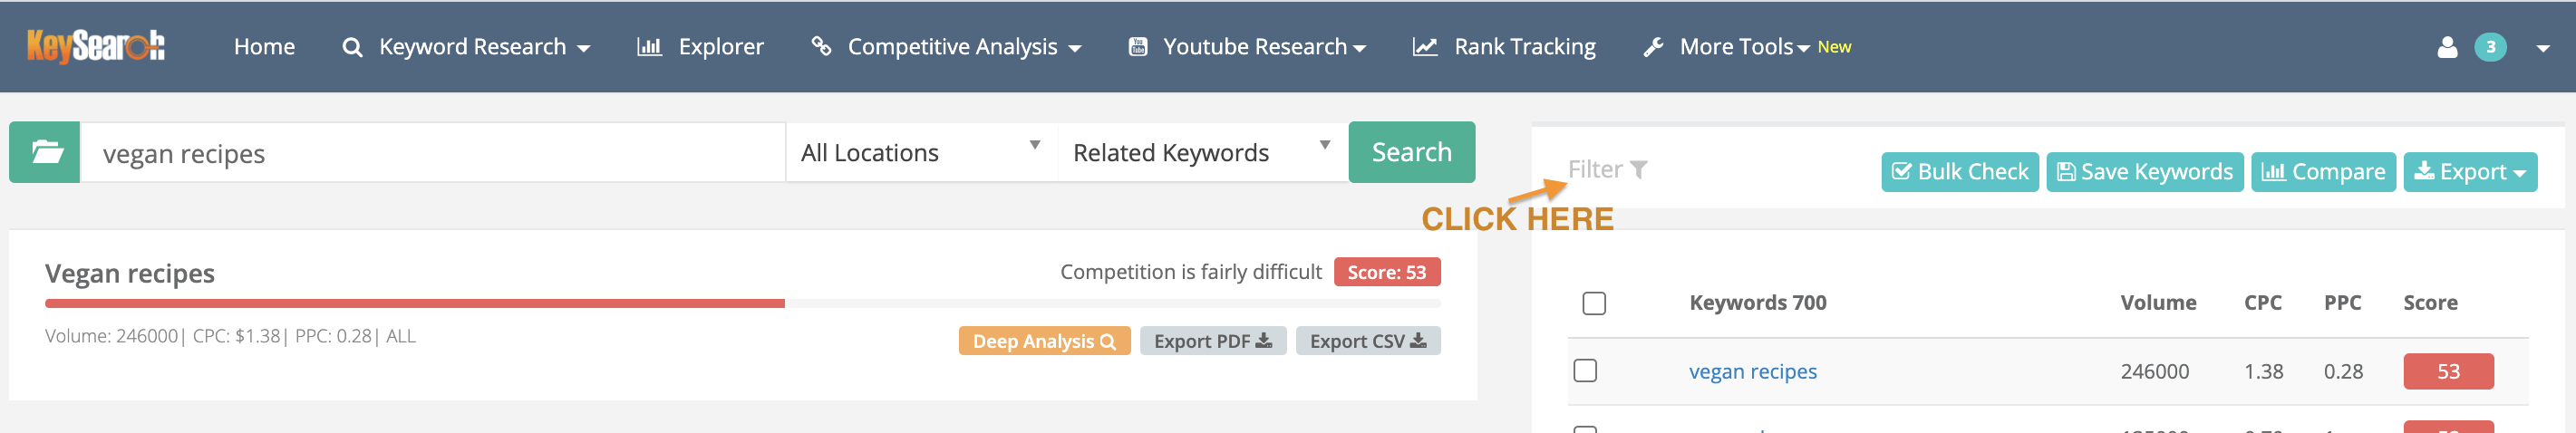 keysearch filter and competition